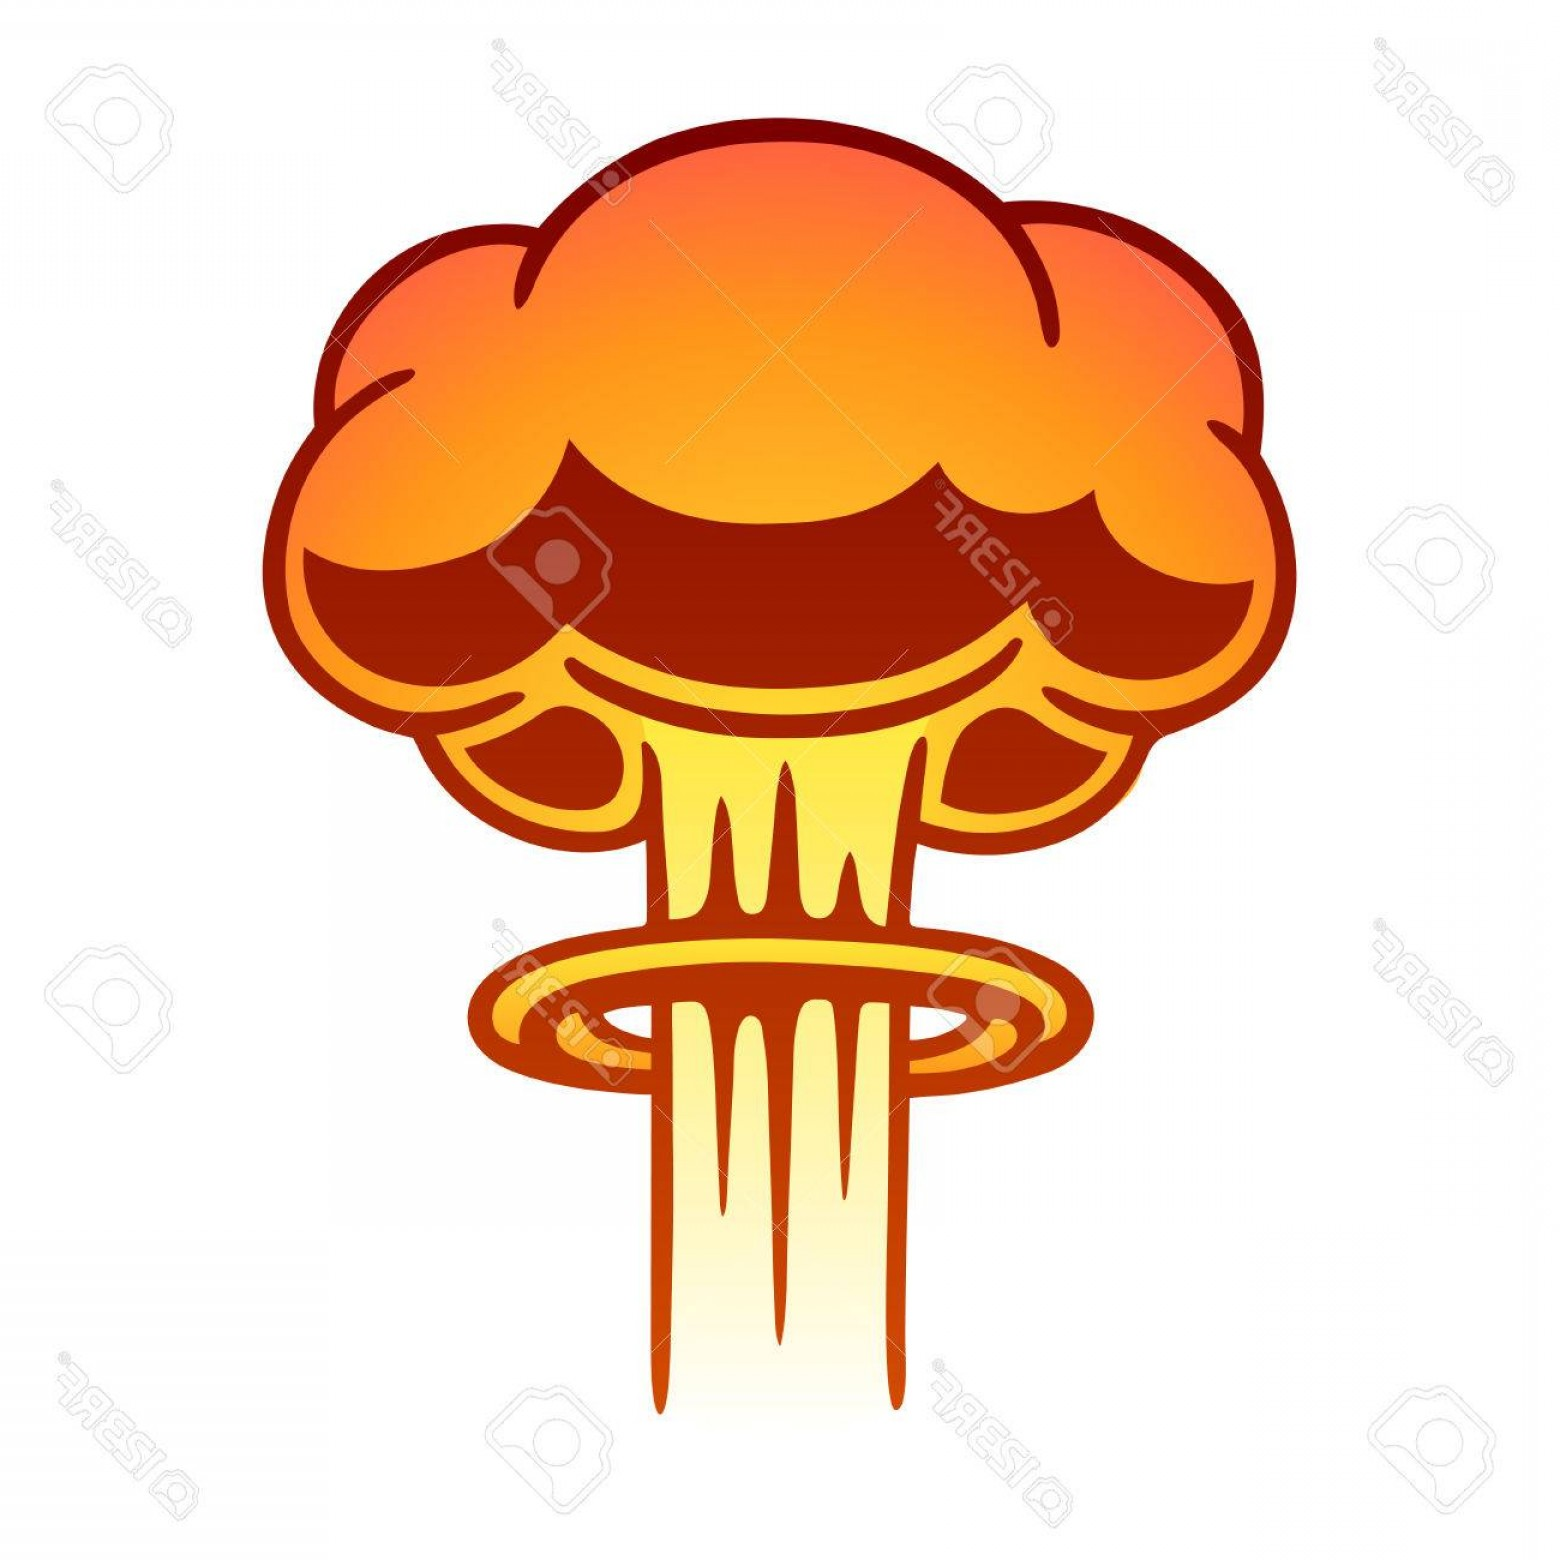 Atomic Vector Coud: Photostock Vector Cartoon Comic Style Nuclear Mushroom Cloud Illustration Atomic Explosion Vector Clip Art